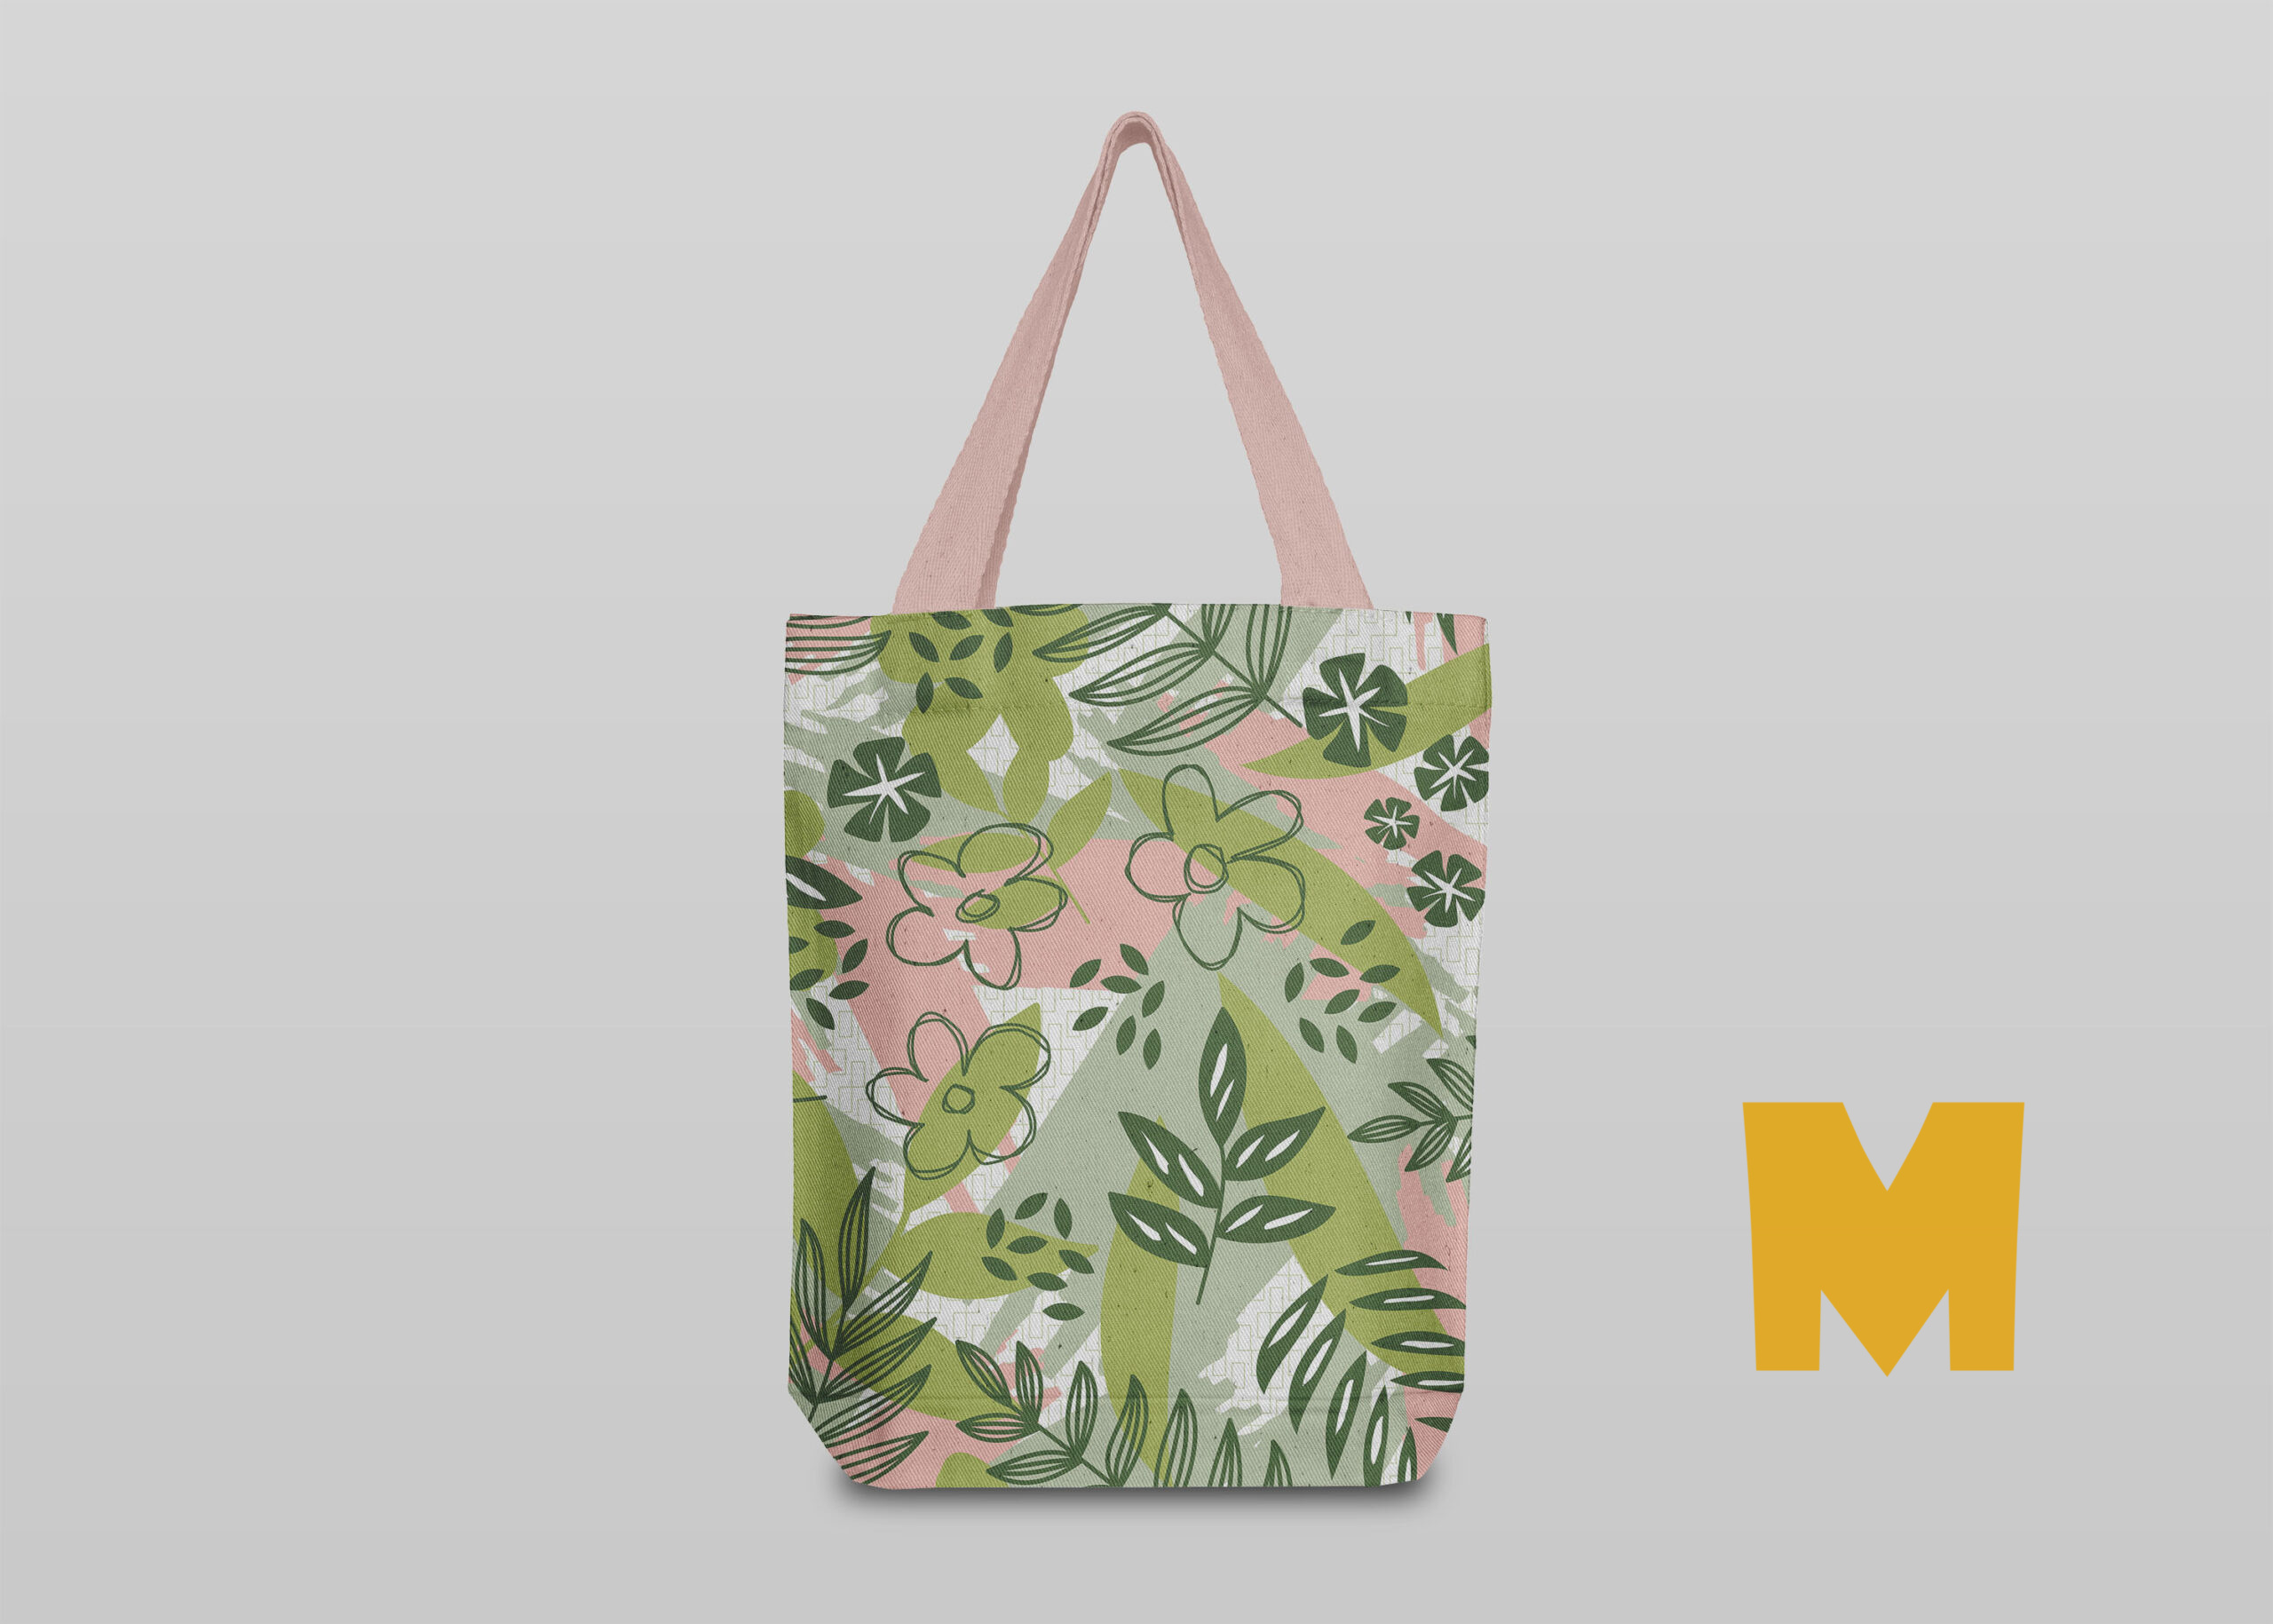 Fabric Shop Bag Mockup